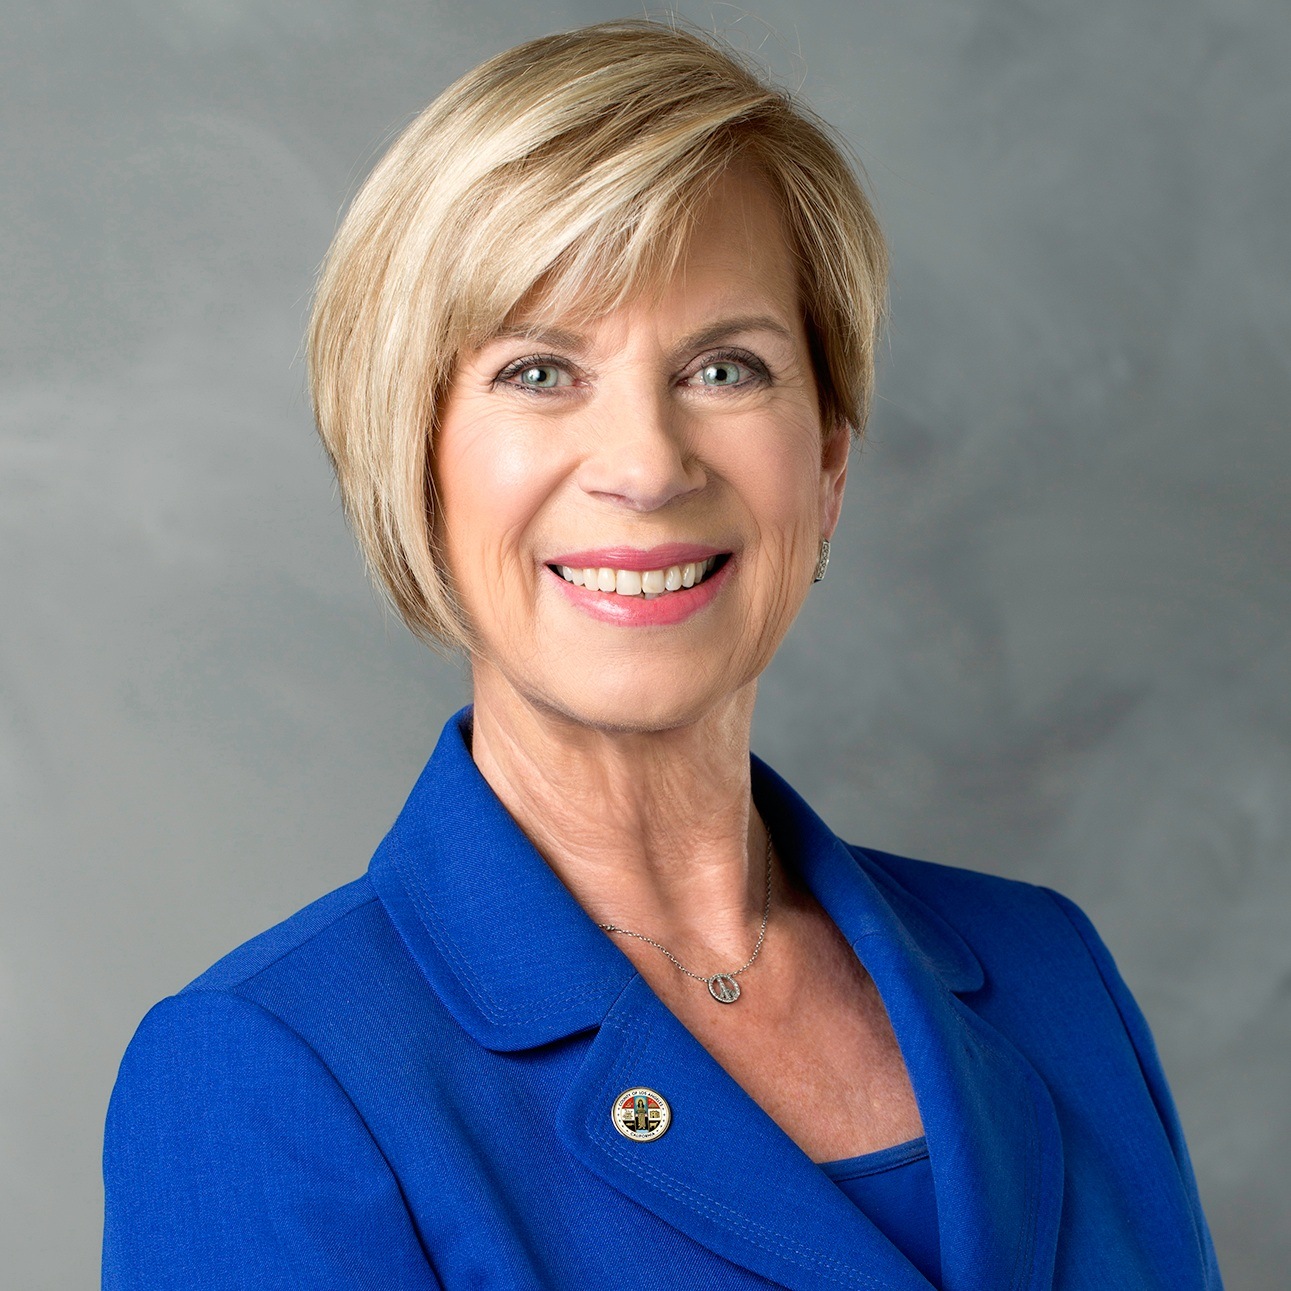 Supervisor Janice Hahn - Los Angeles County 4th DistrictField Office:825 Maple Ave., Room 150Torrance, CA 90503Phone: (310) 222-3015Field Representative: Mark Waronekmwaronek@bos.lacounty.govhttp://hahn.lacounty.gov/